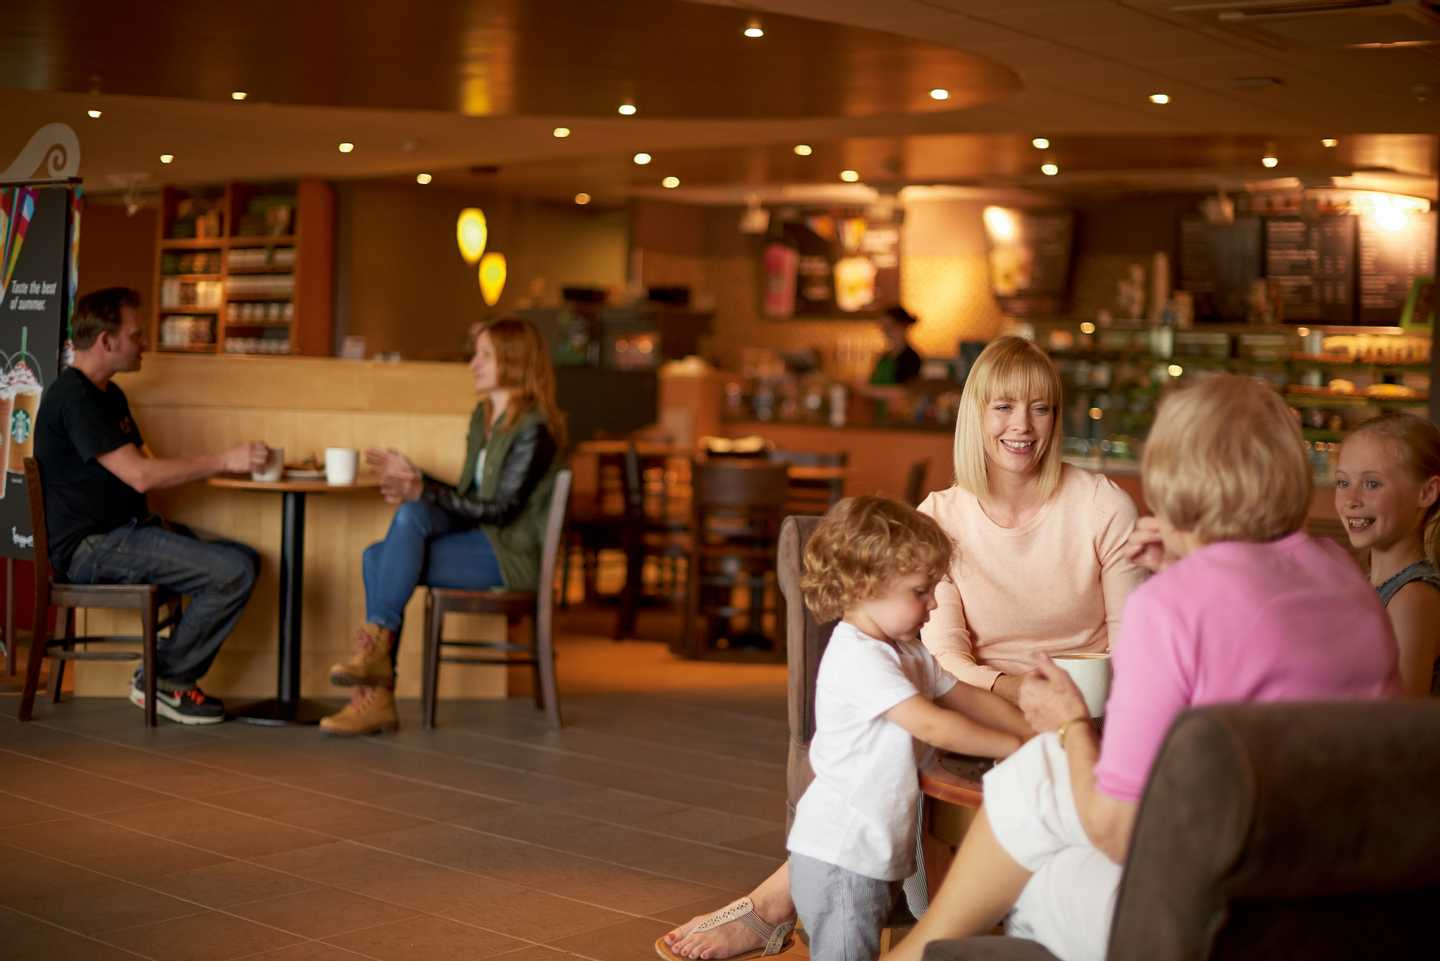 Guests enjoying a coffee in our Starbucks coffeehouse